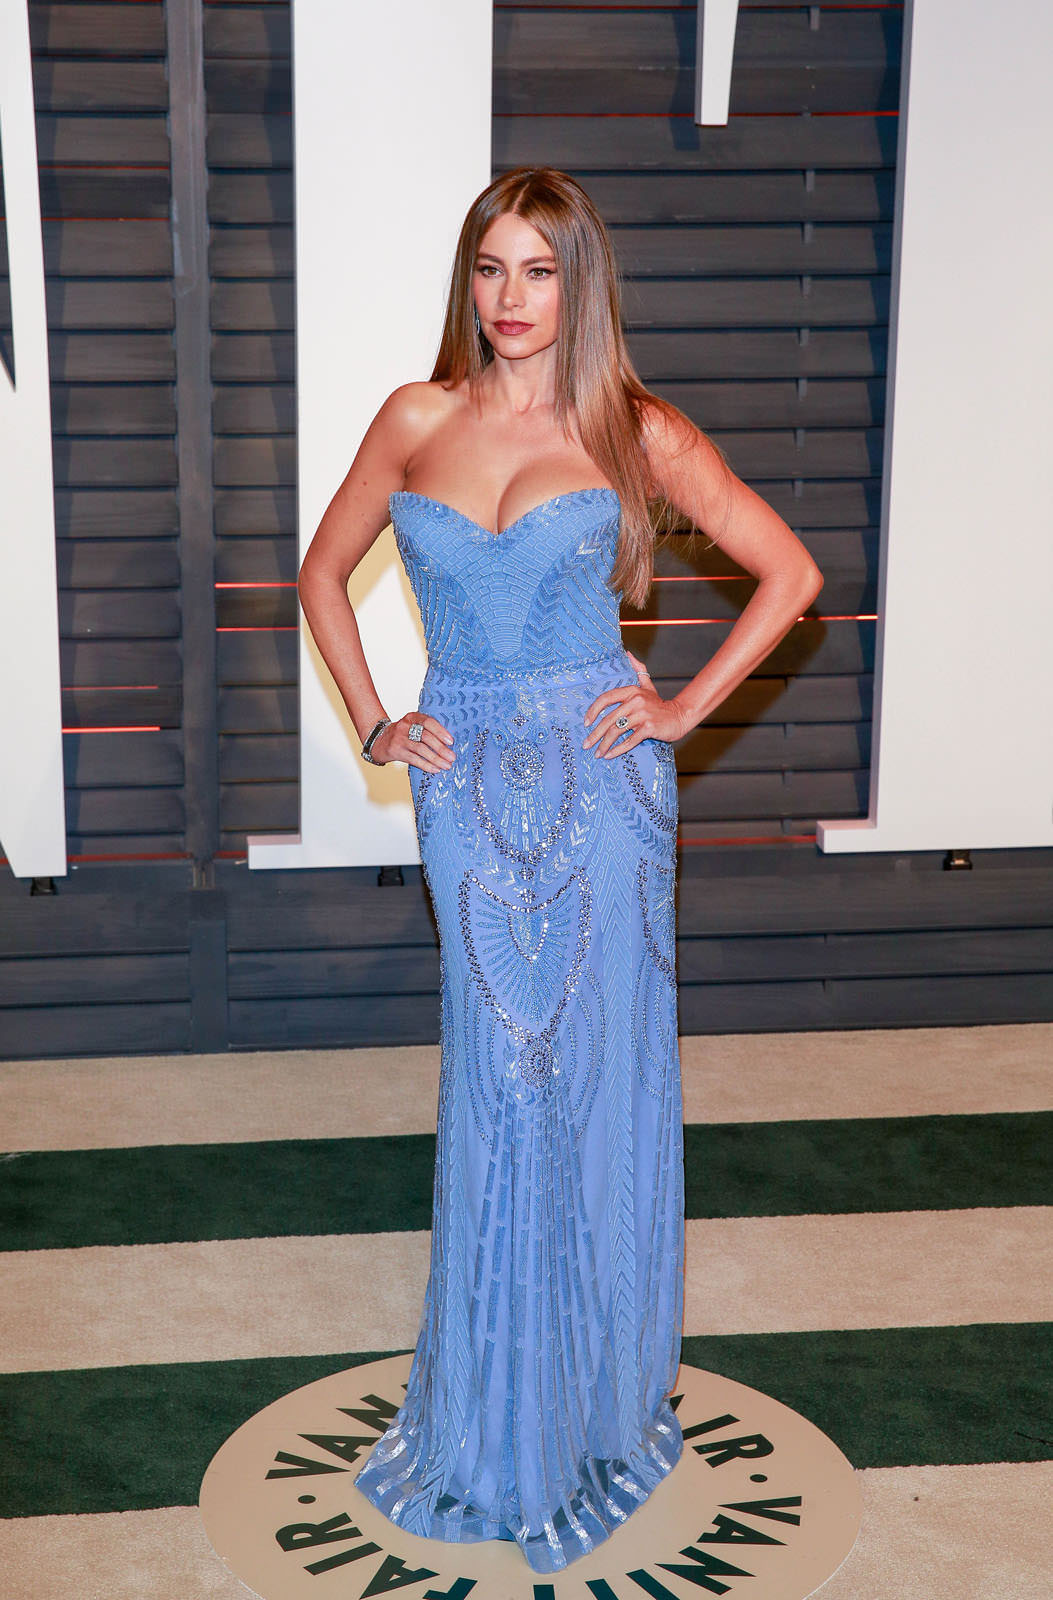 Sofia Vergara Photo Gallery